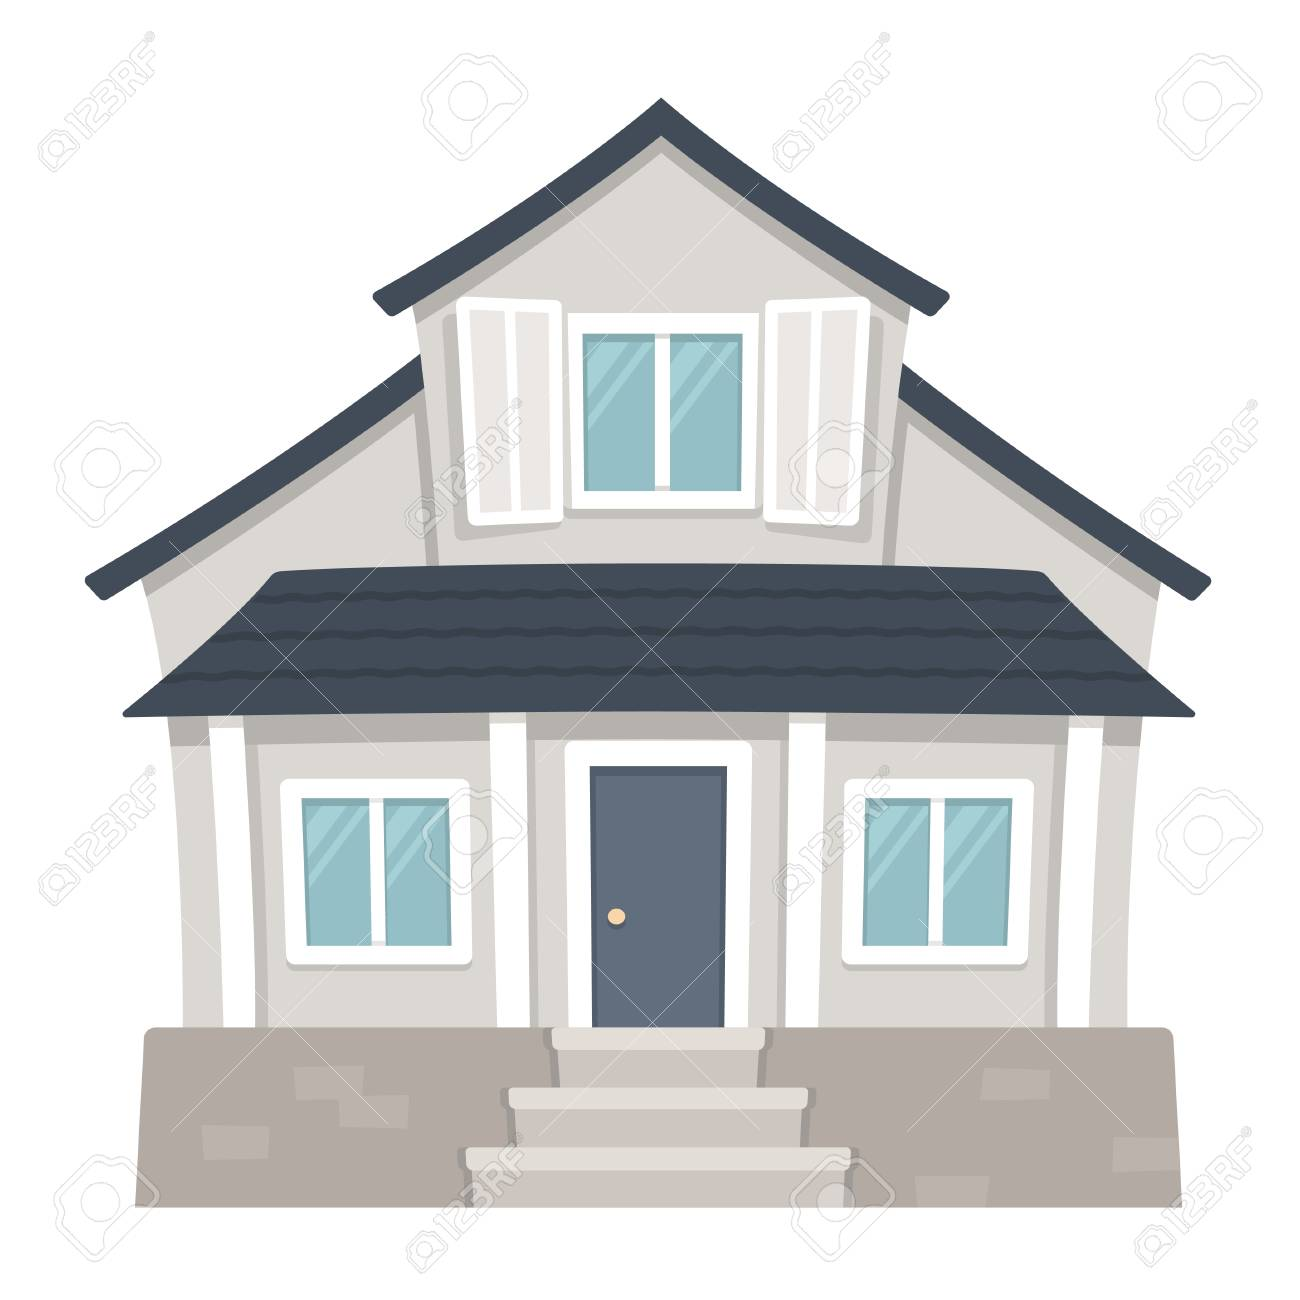 Classic American Family House Cartoon Drawing Traditional Suburban Royalty Free Cliparts Vectors And Stock Illustration Image 95218343